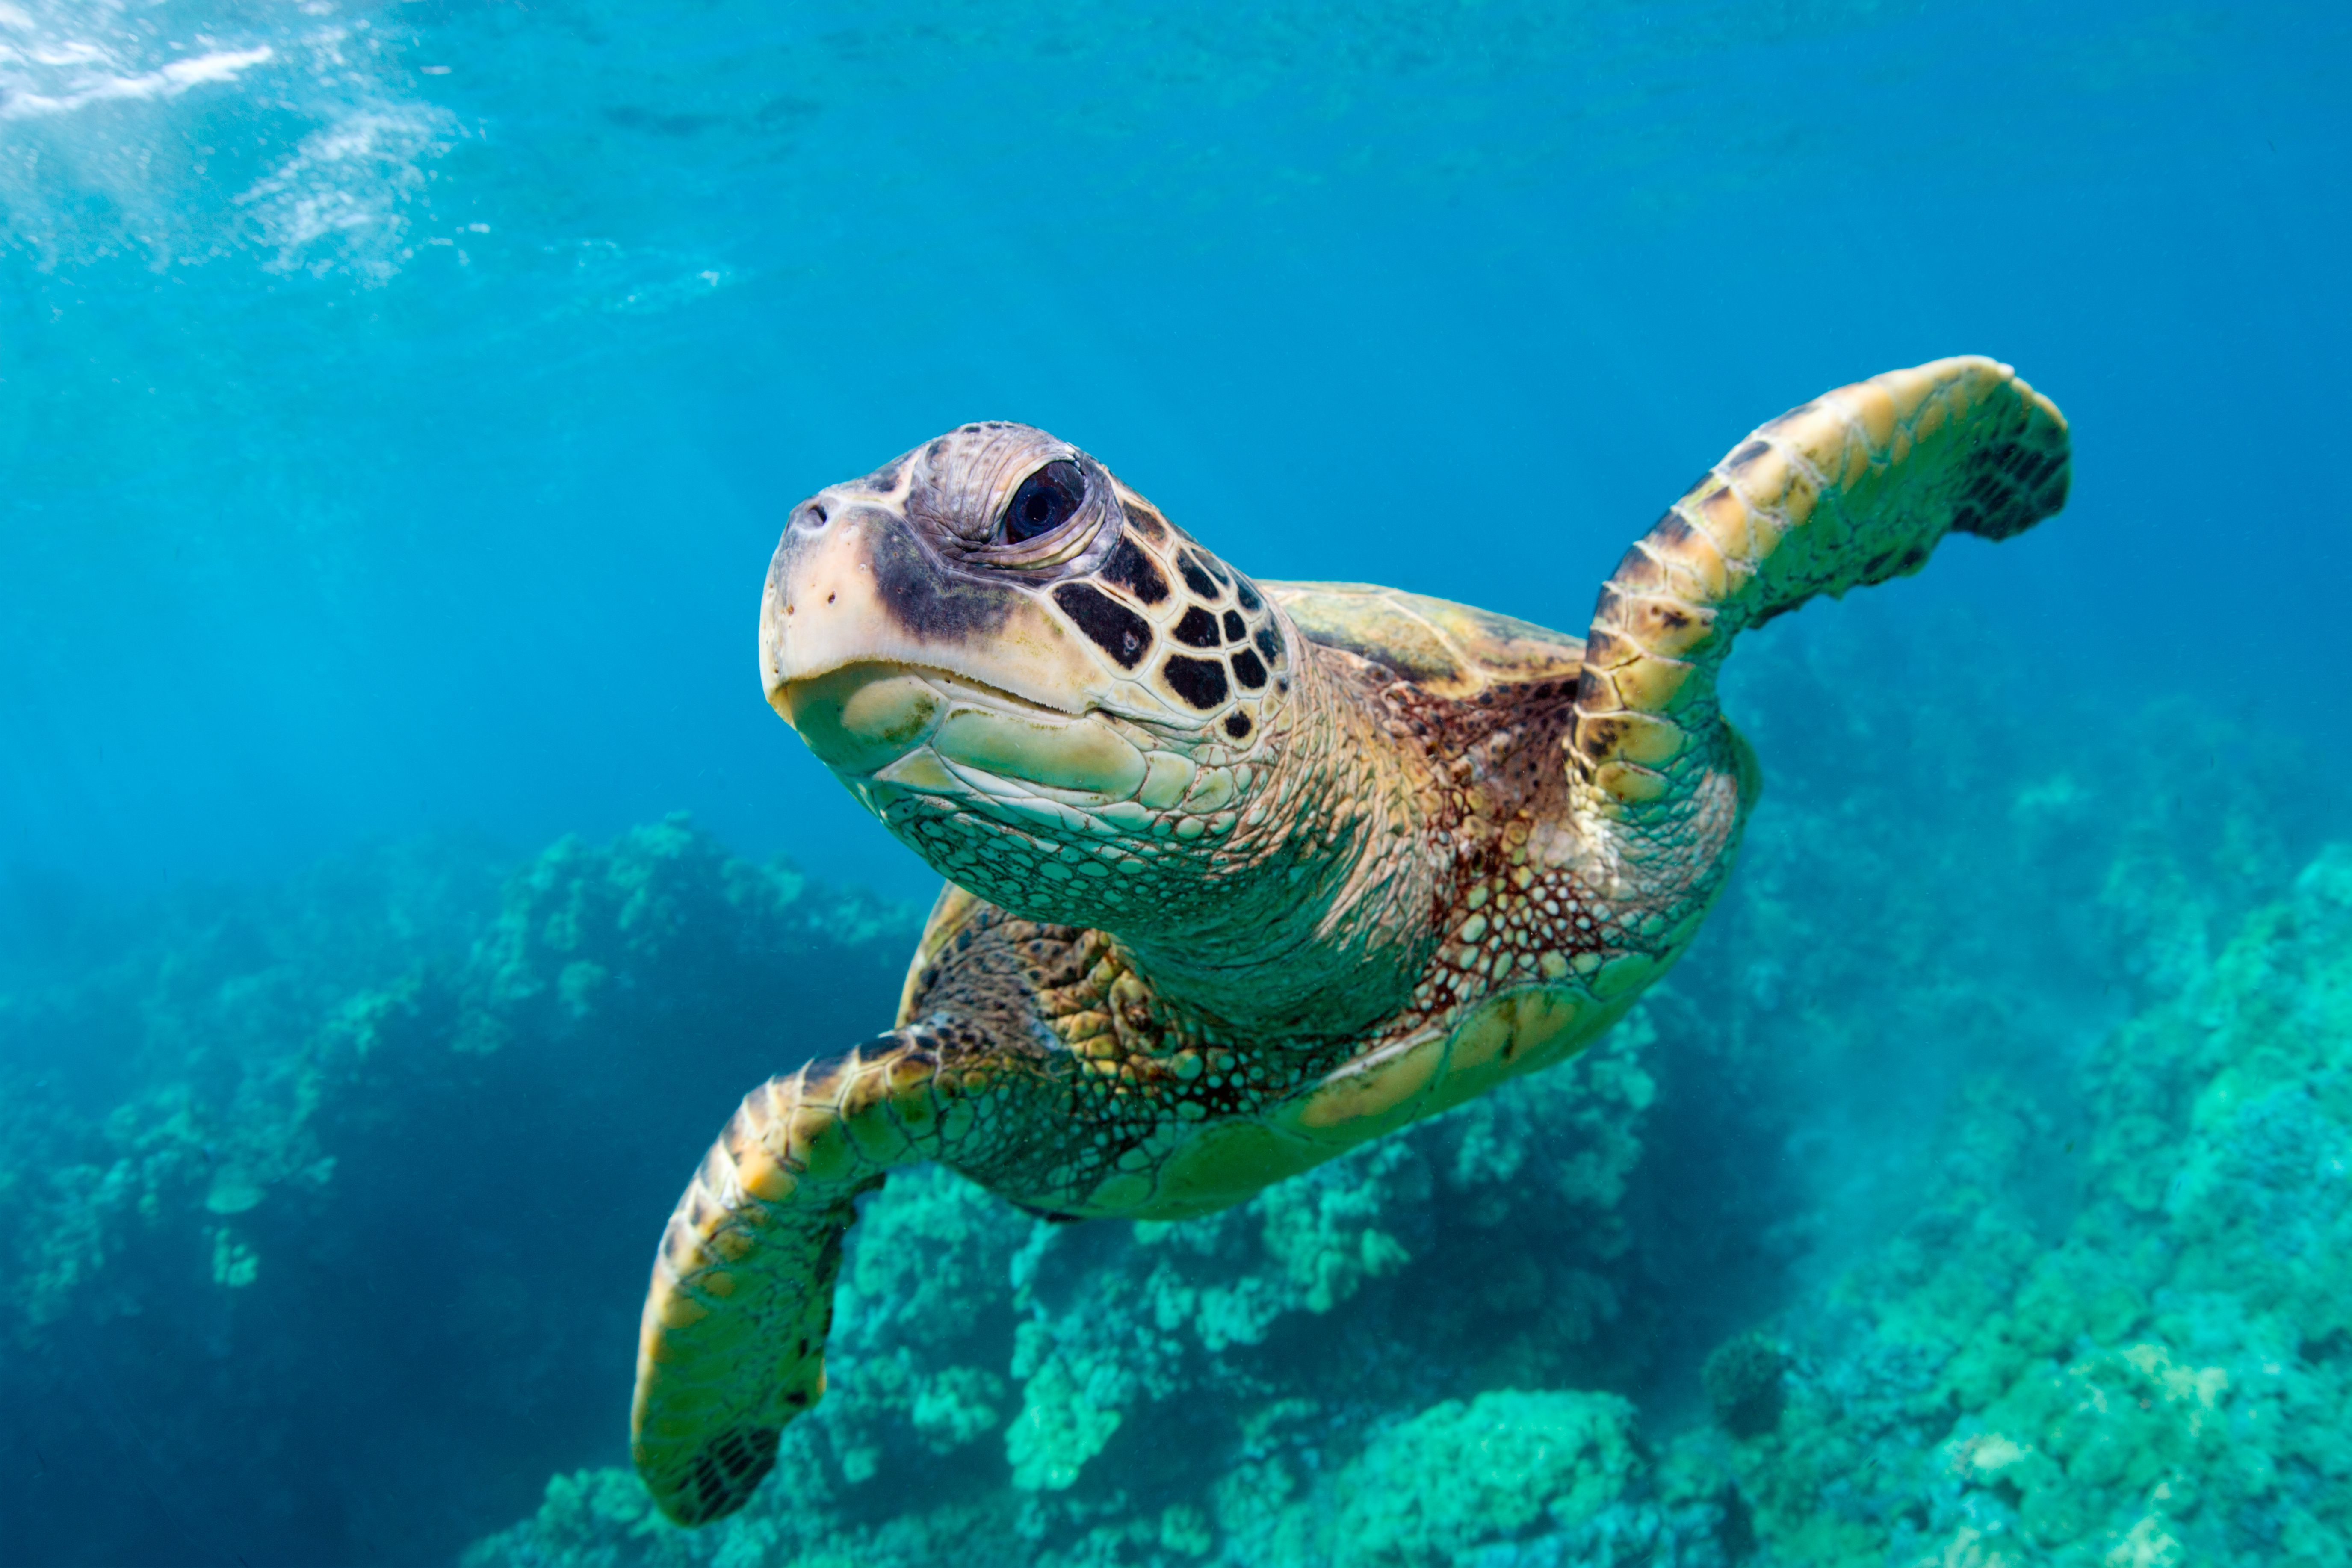 Learn About Sea Turtles With These Free Printable